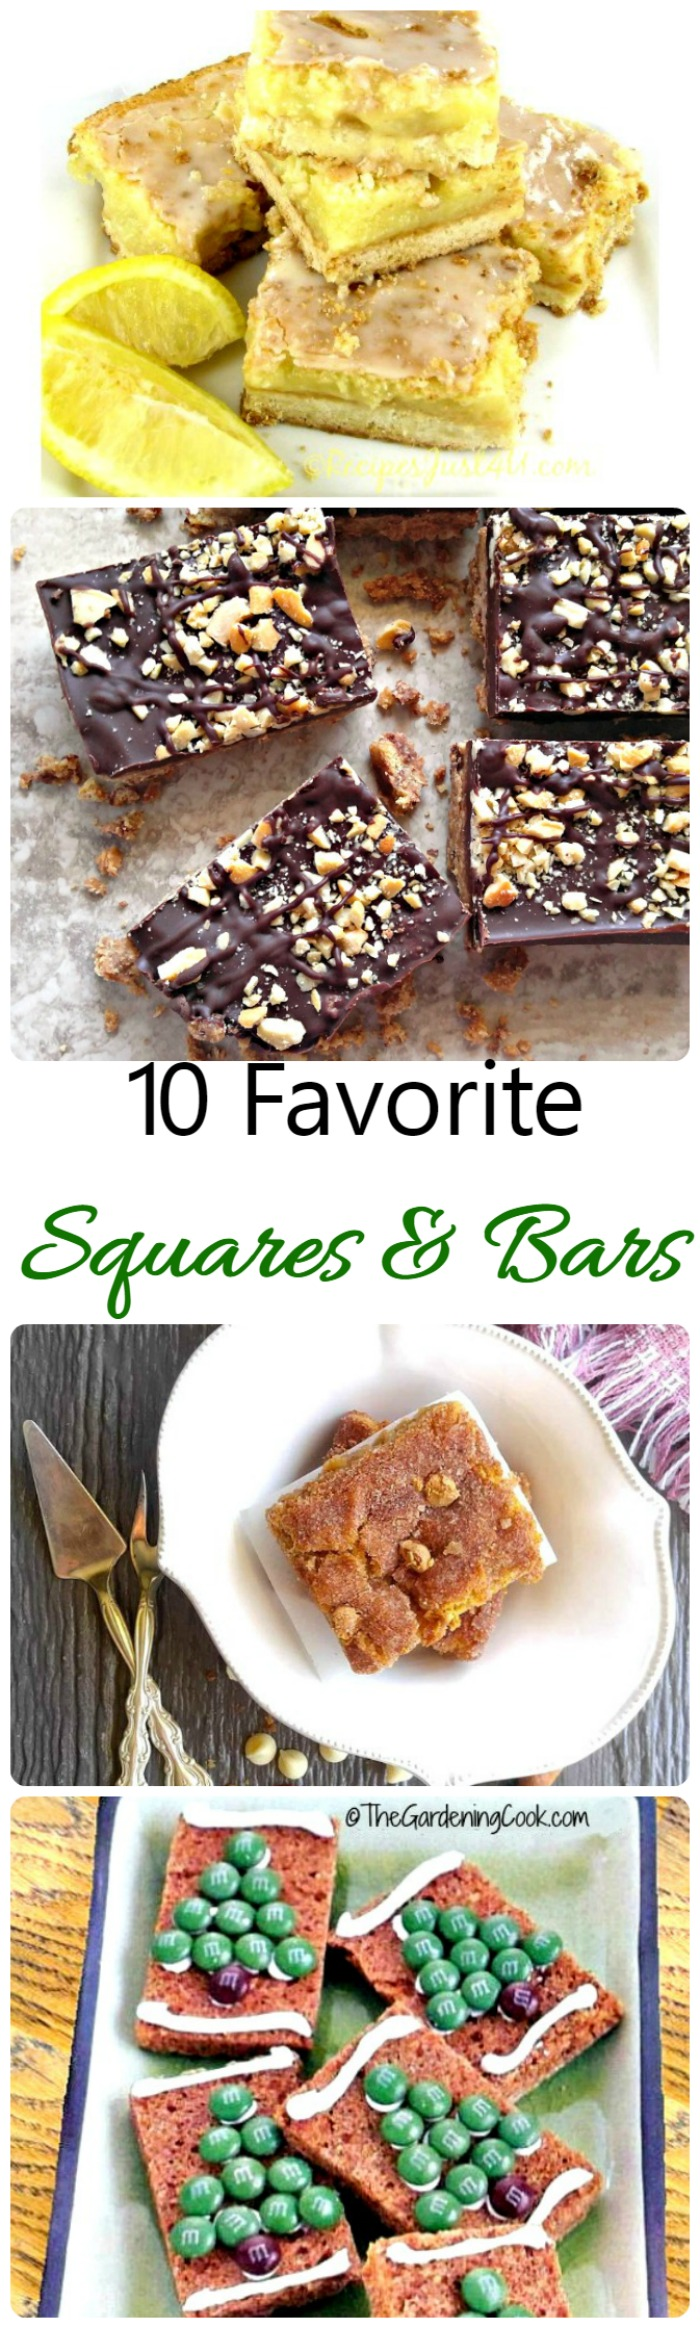 10 of my favorite bars recipes. From date bars to lemon bars and every thing in between!